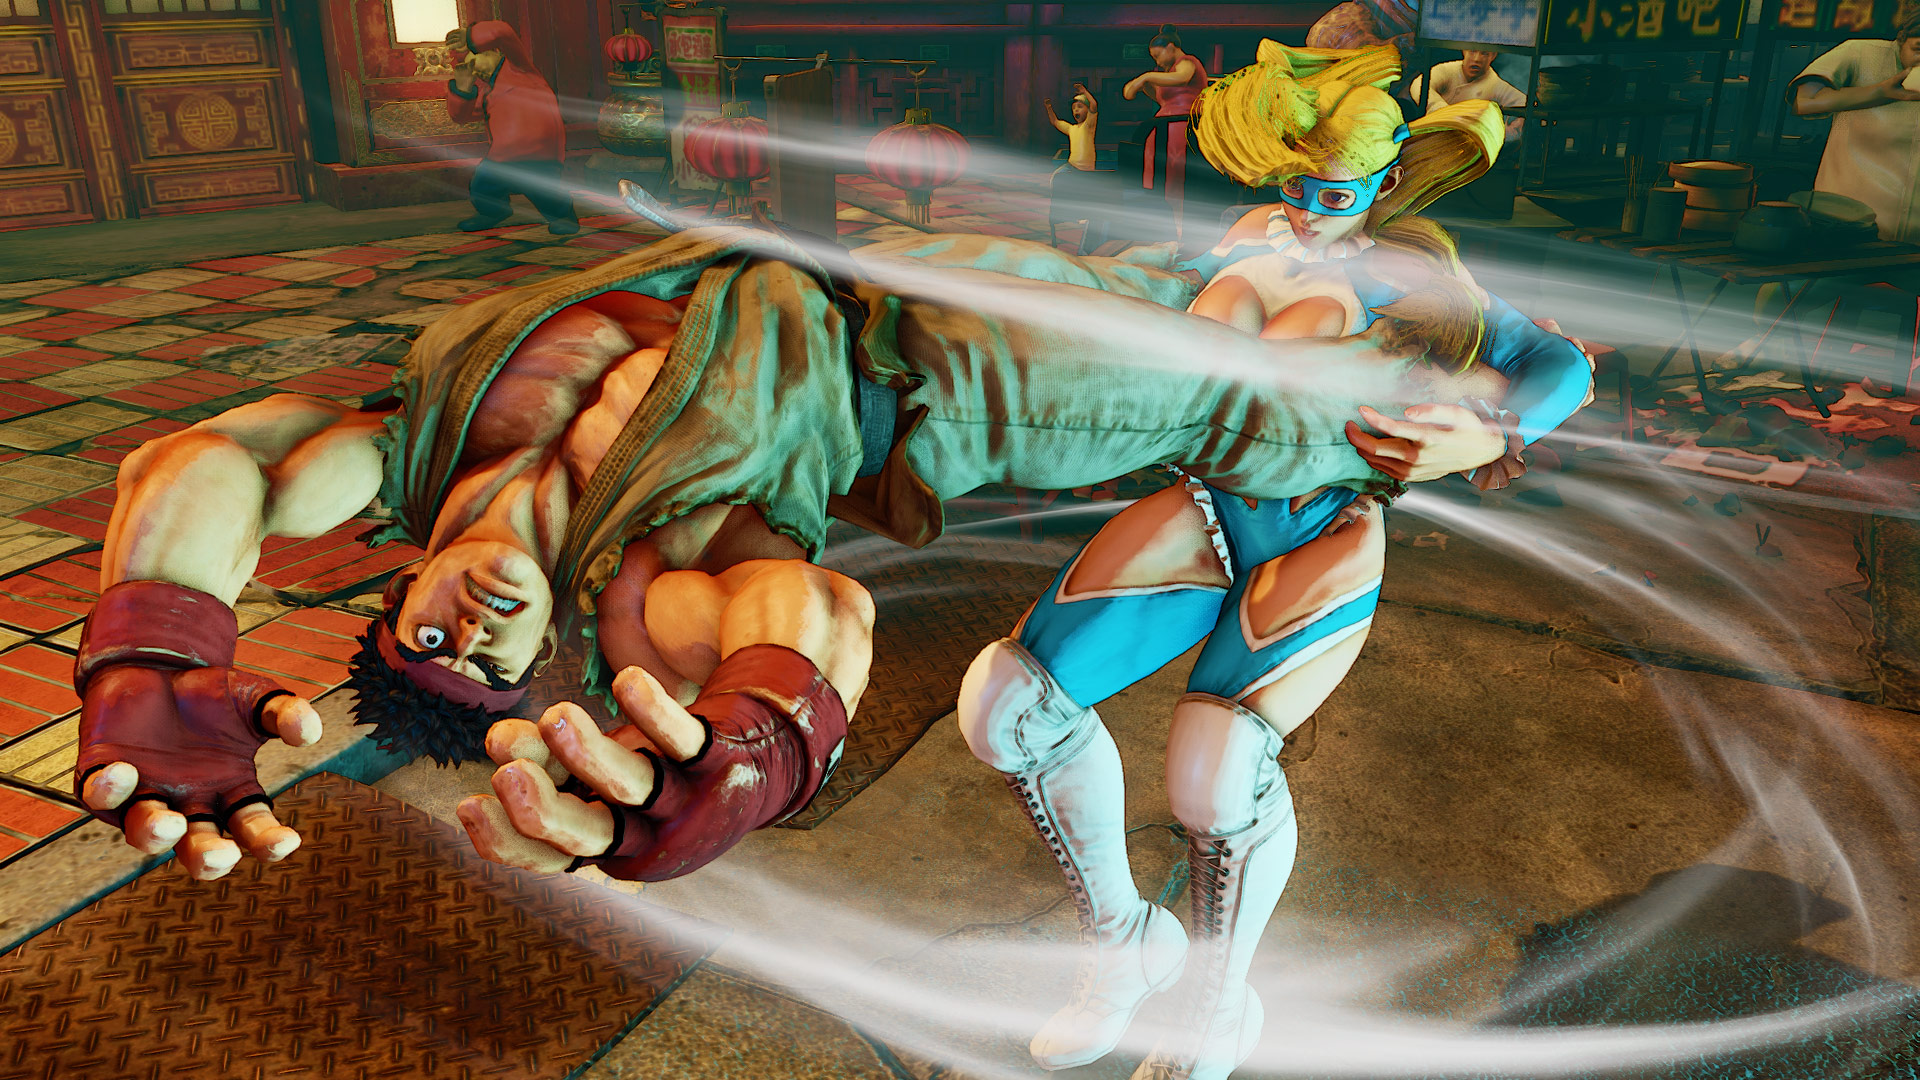 Latest Street Fighter V patch breaking the game on PC (Update)